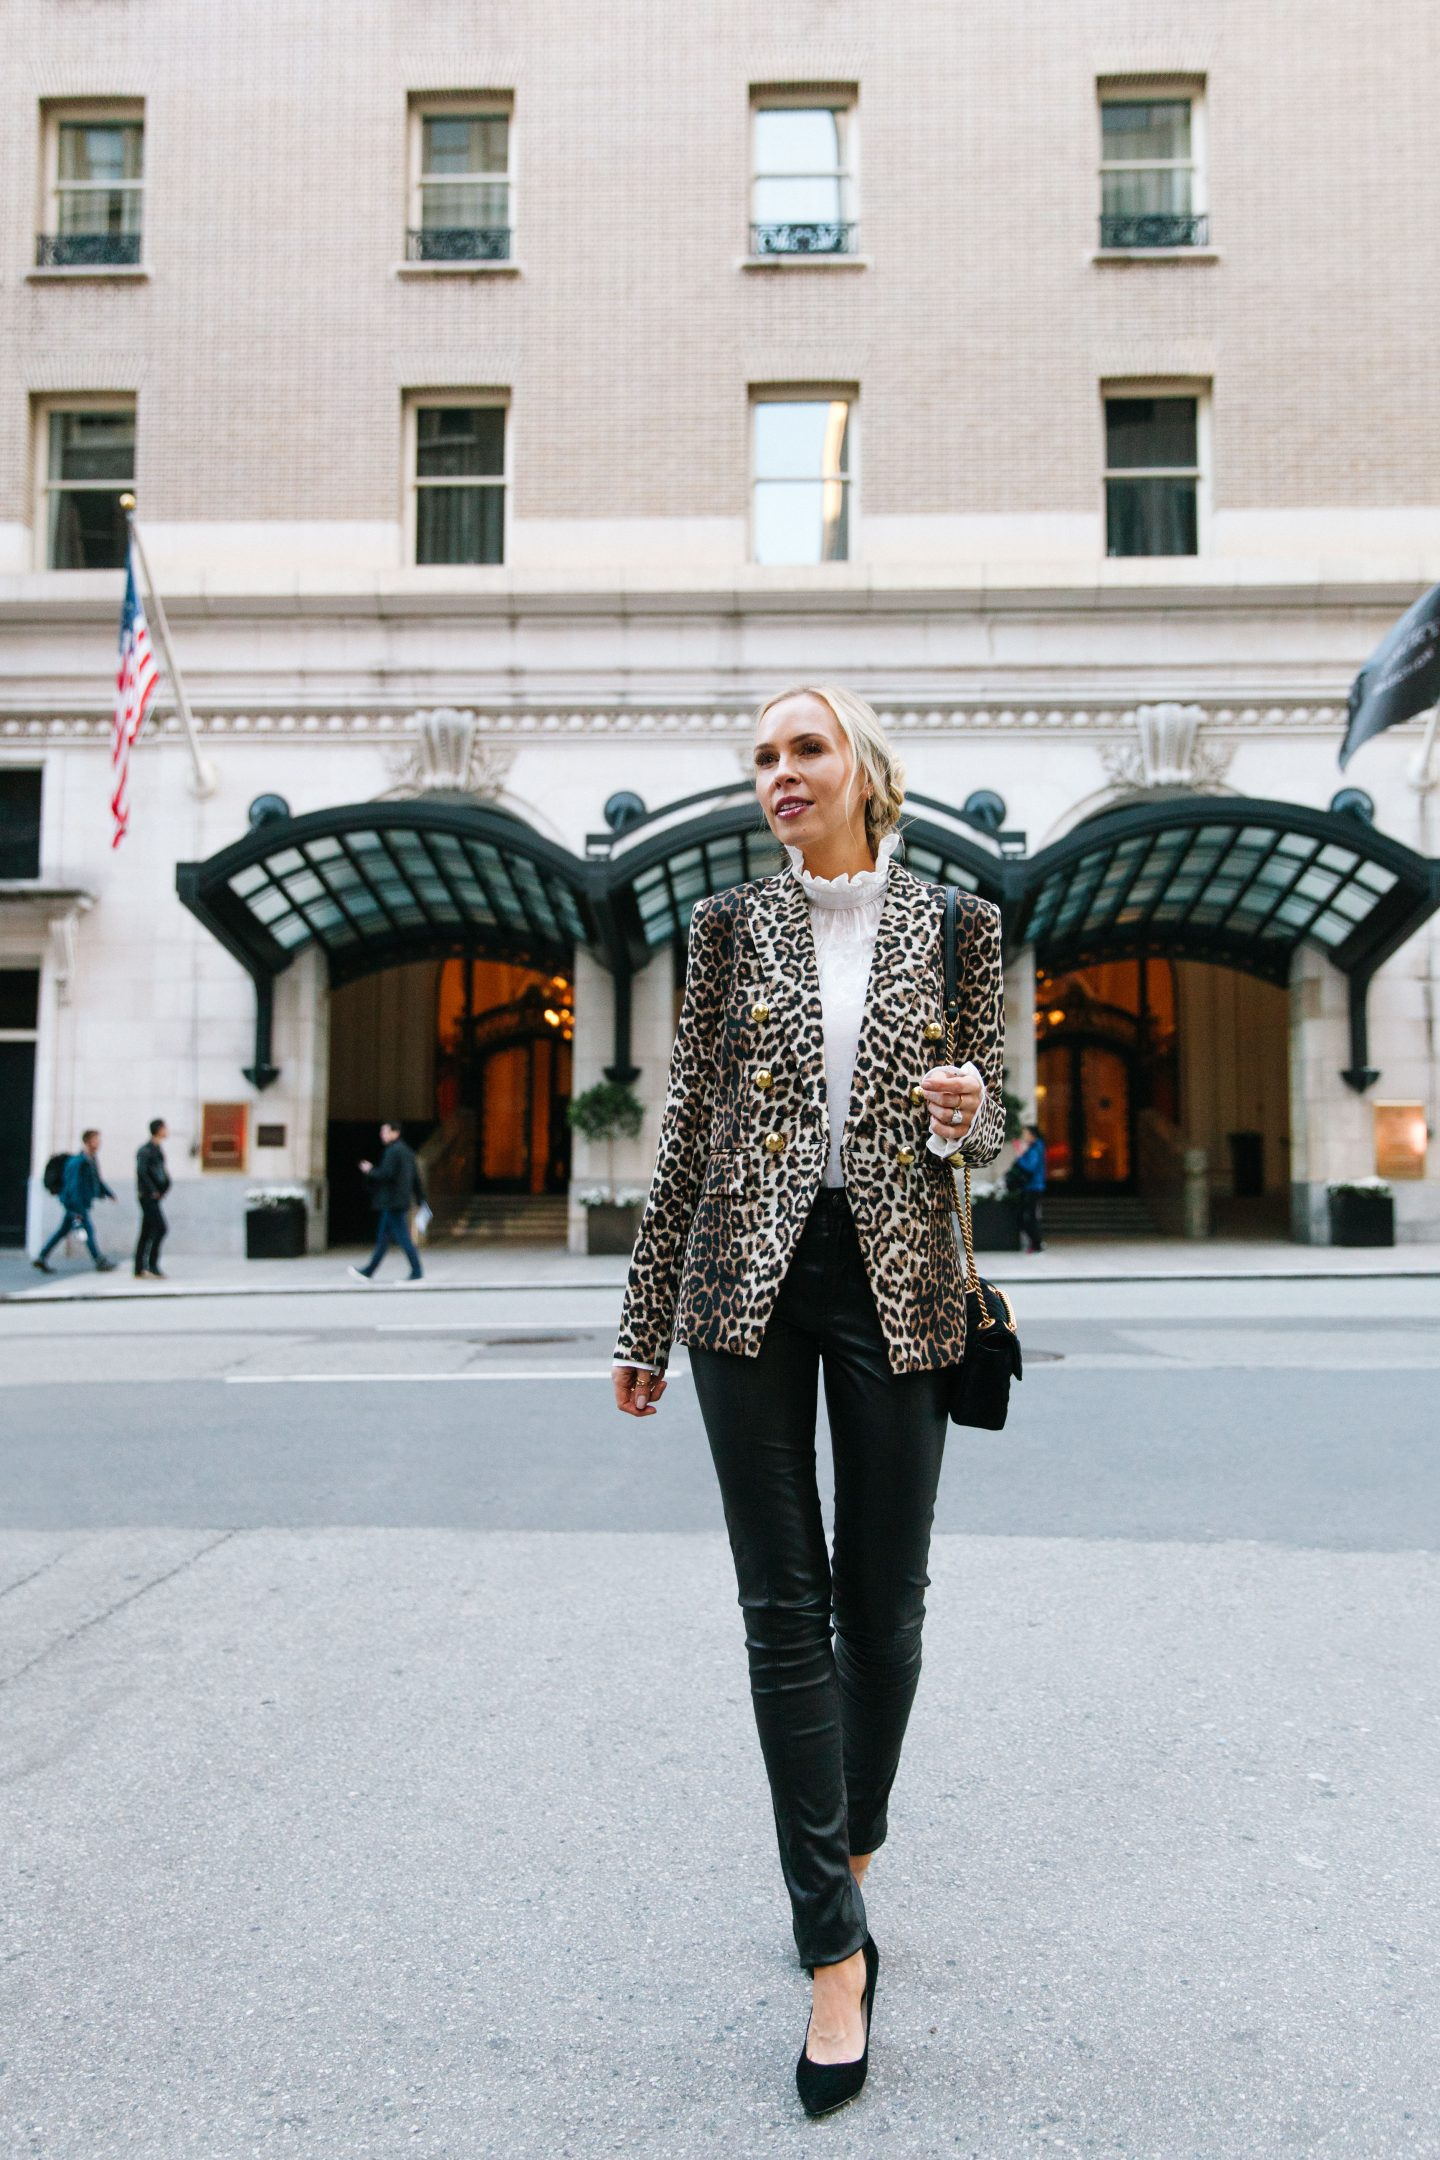 Luxury staycation at the Palace Hotel San Francisco featured by top San Francisco blogger, Lombard and Fifth: image of a woman wearing a Veronica Beard leopard print jacket, TOPSHOP faux leather skinny pants, Halogen blouse and Gucci Marmont matelasse bag.